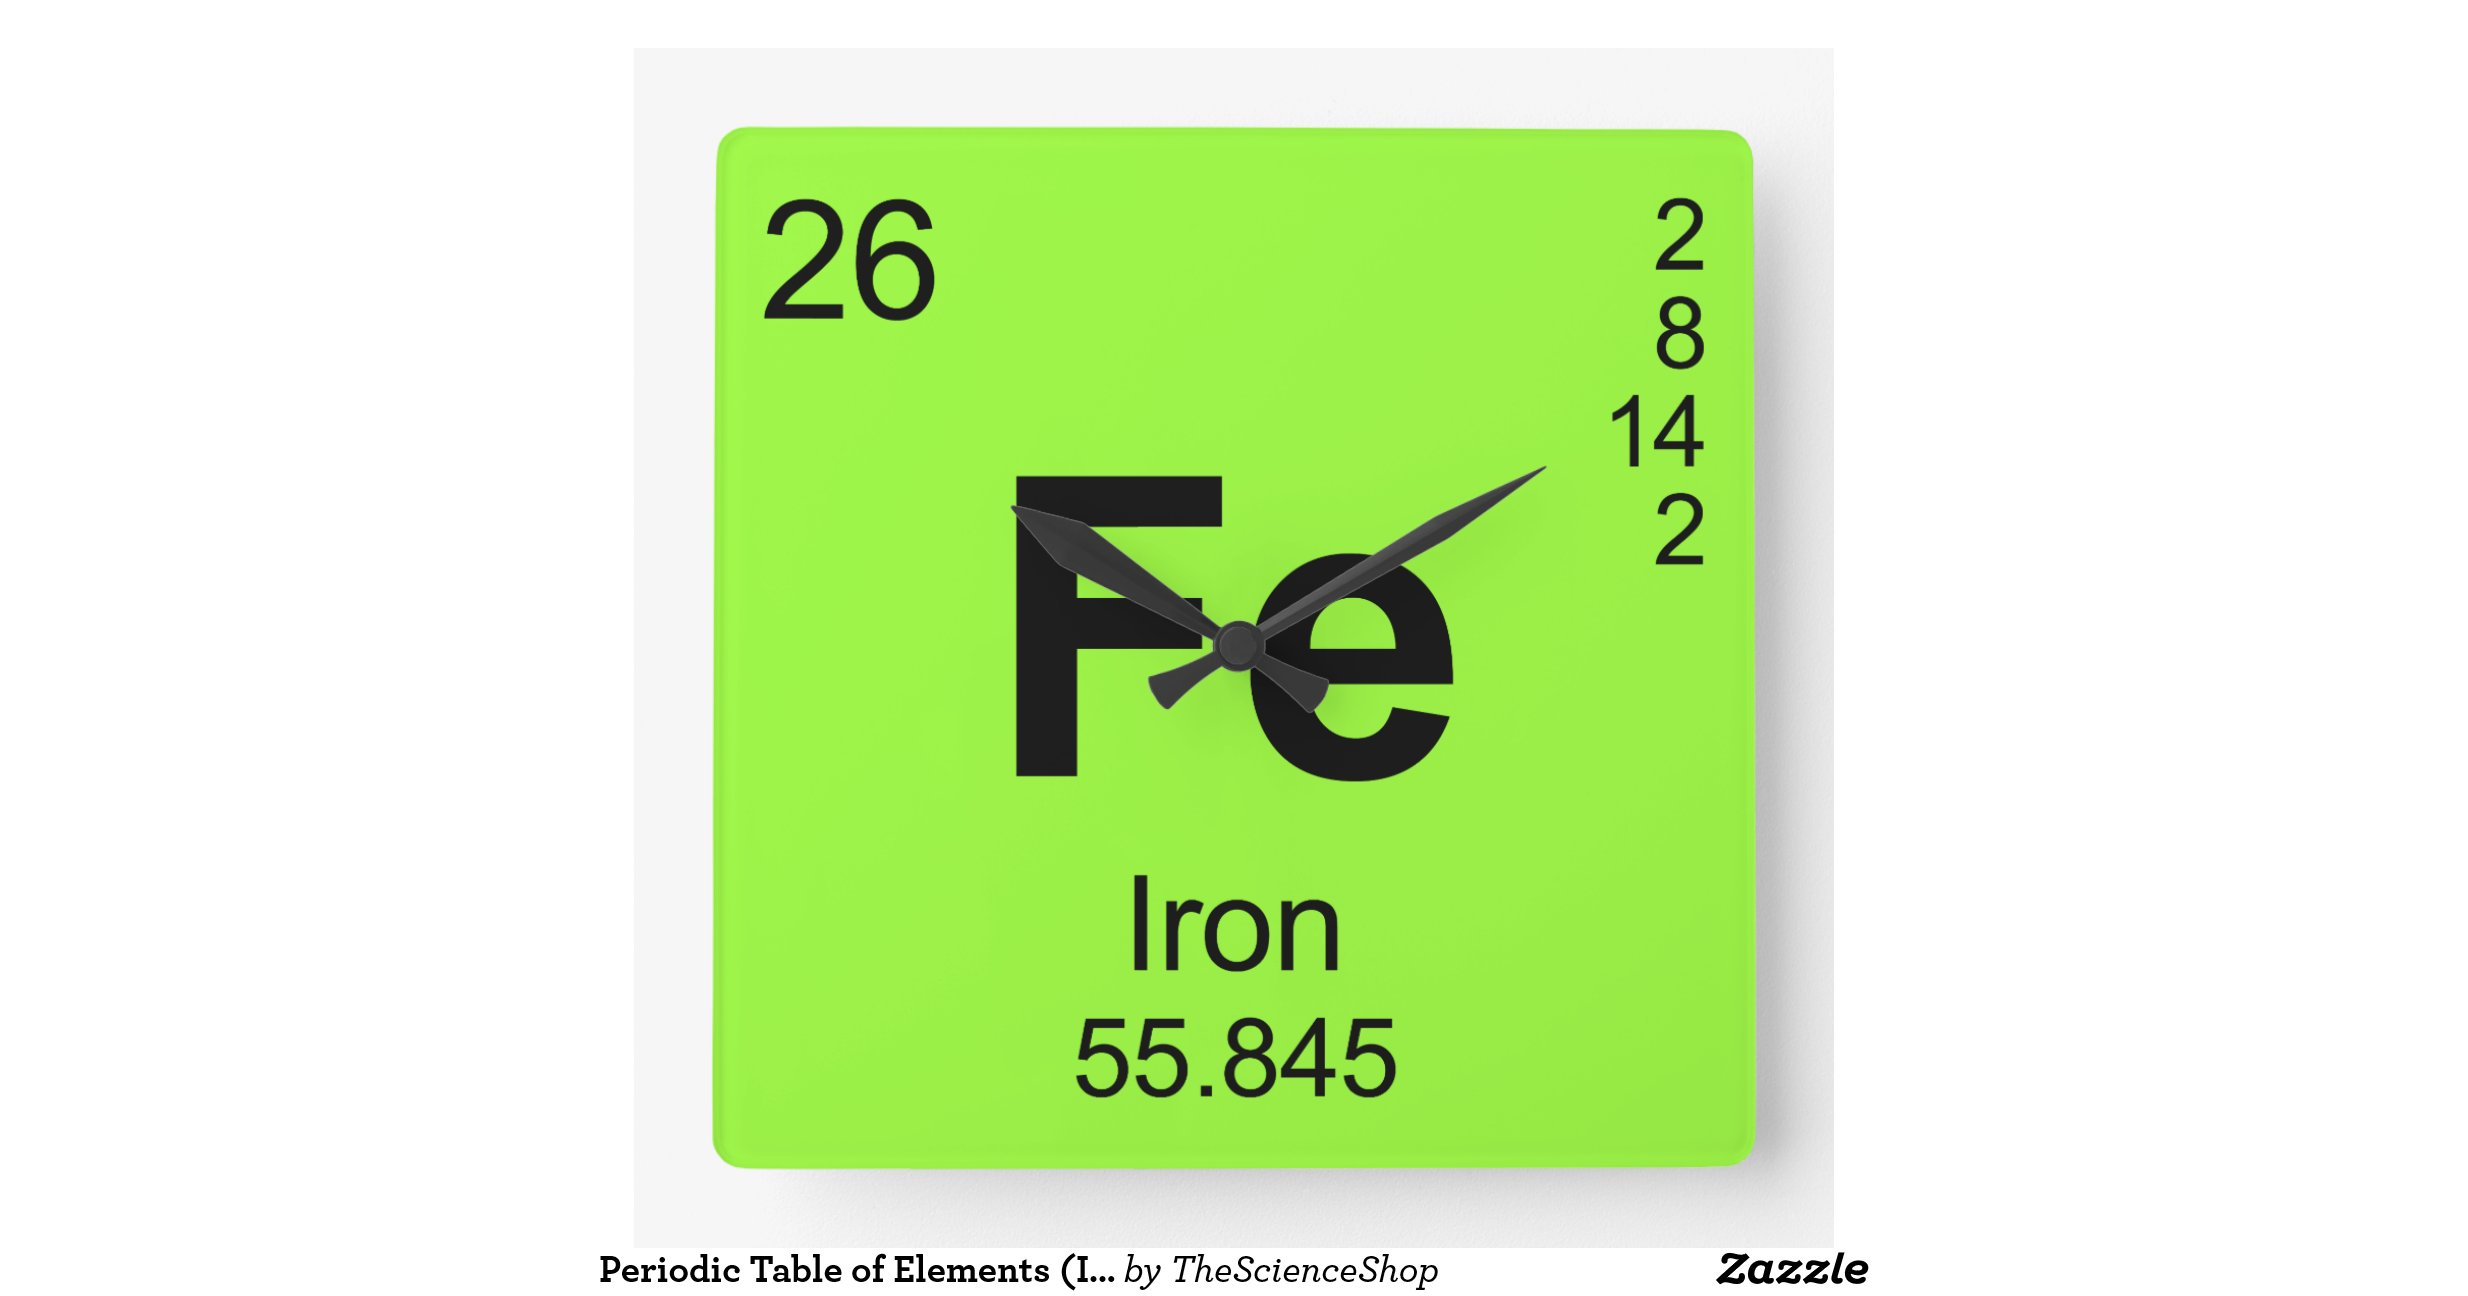 Periodic table of elements iron clocks zazzle - Iron on the periodic table ...